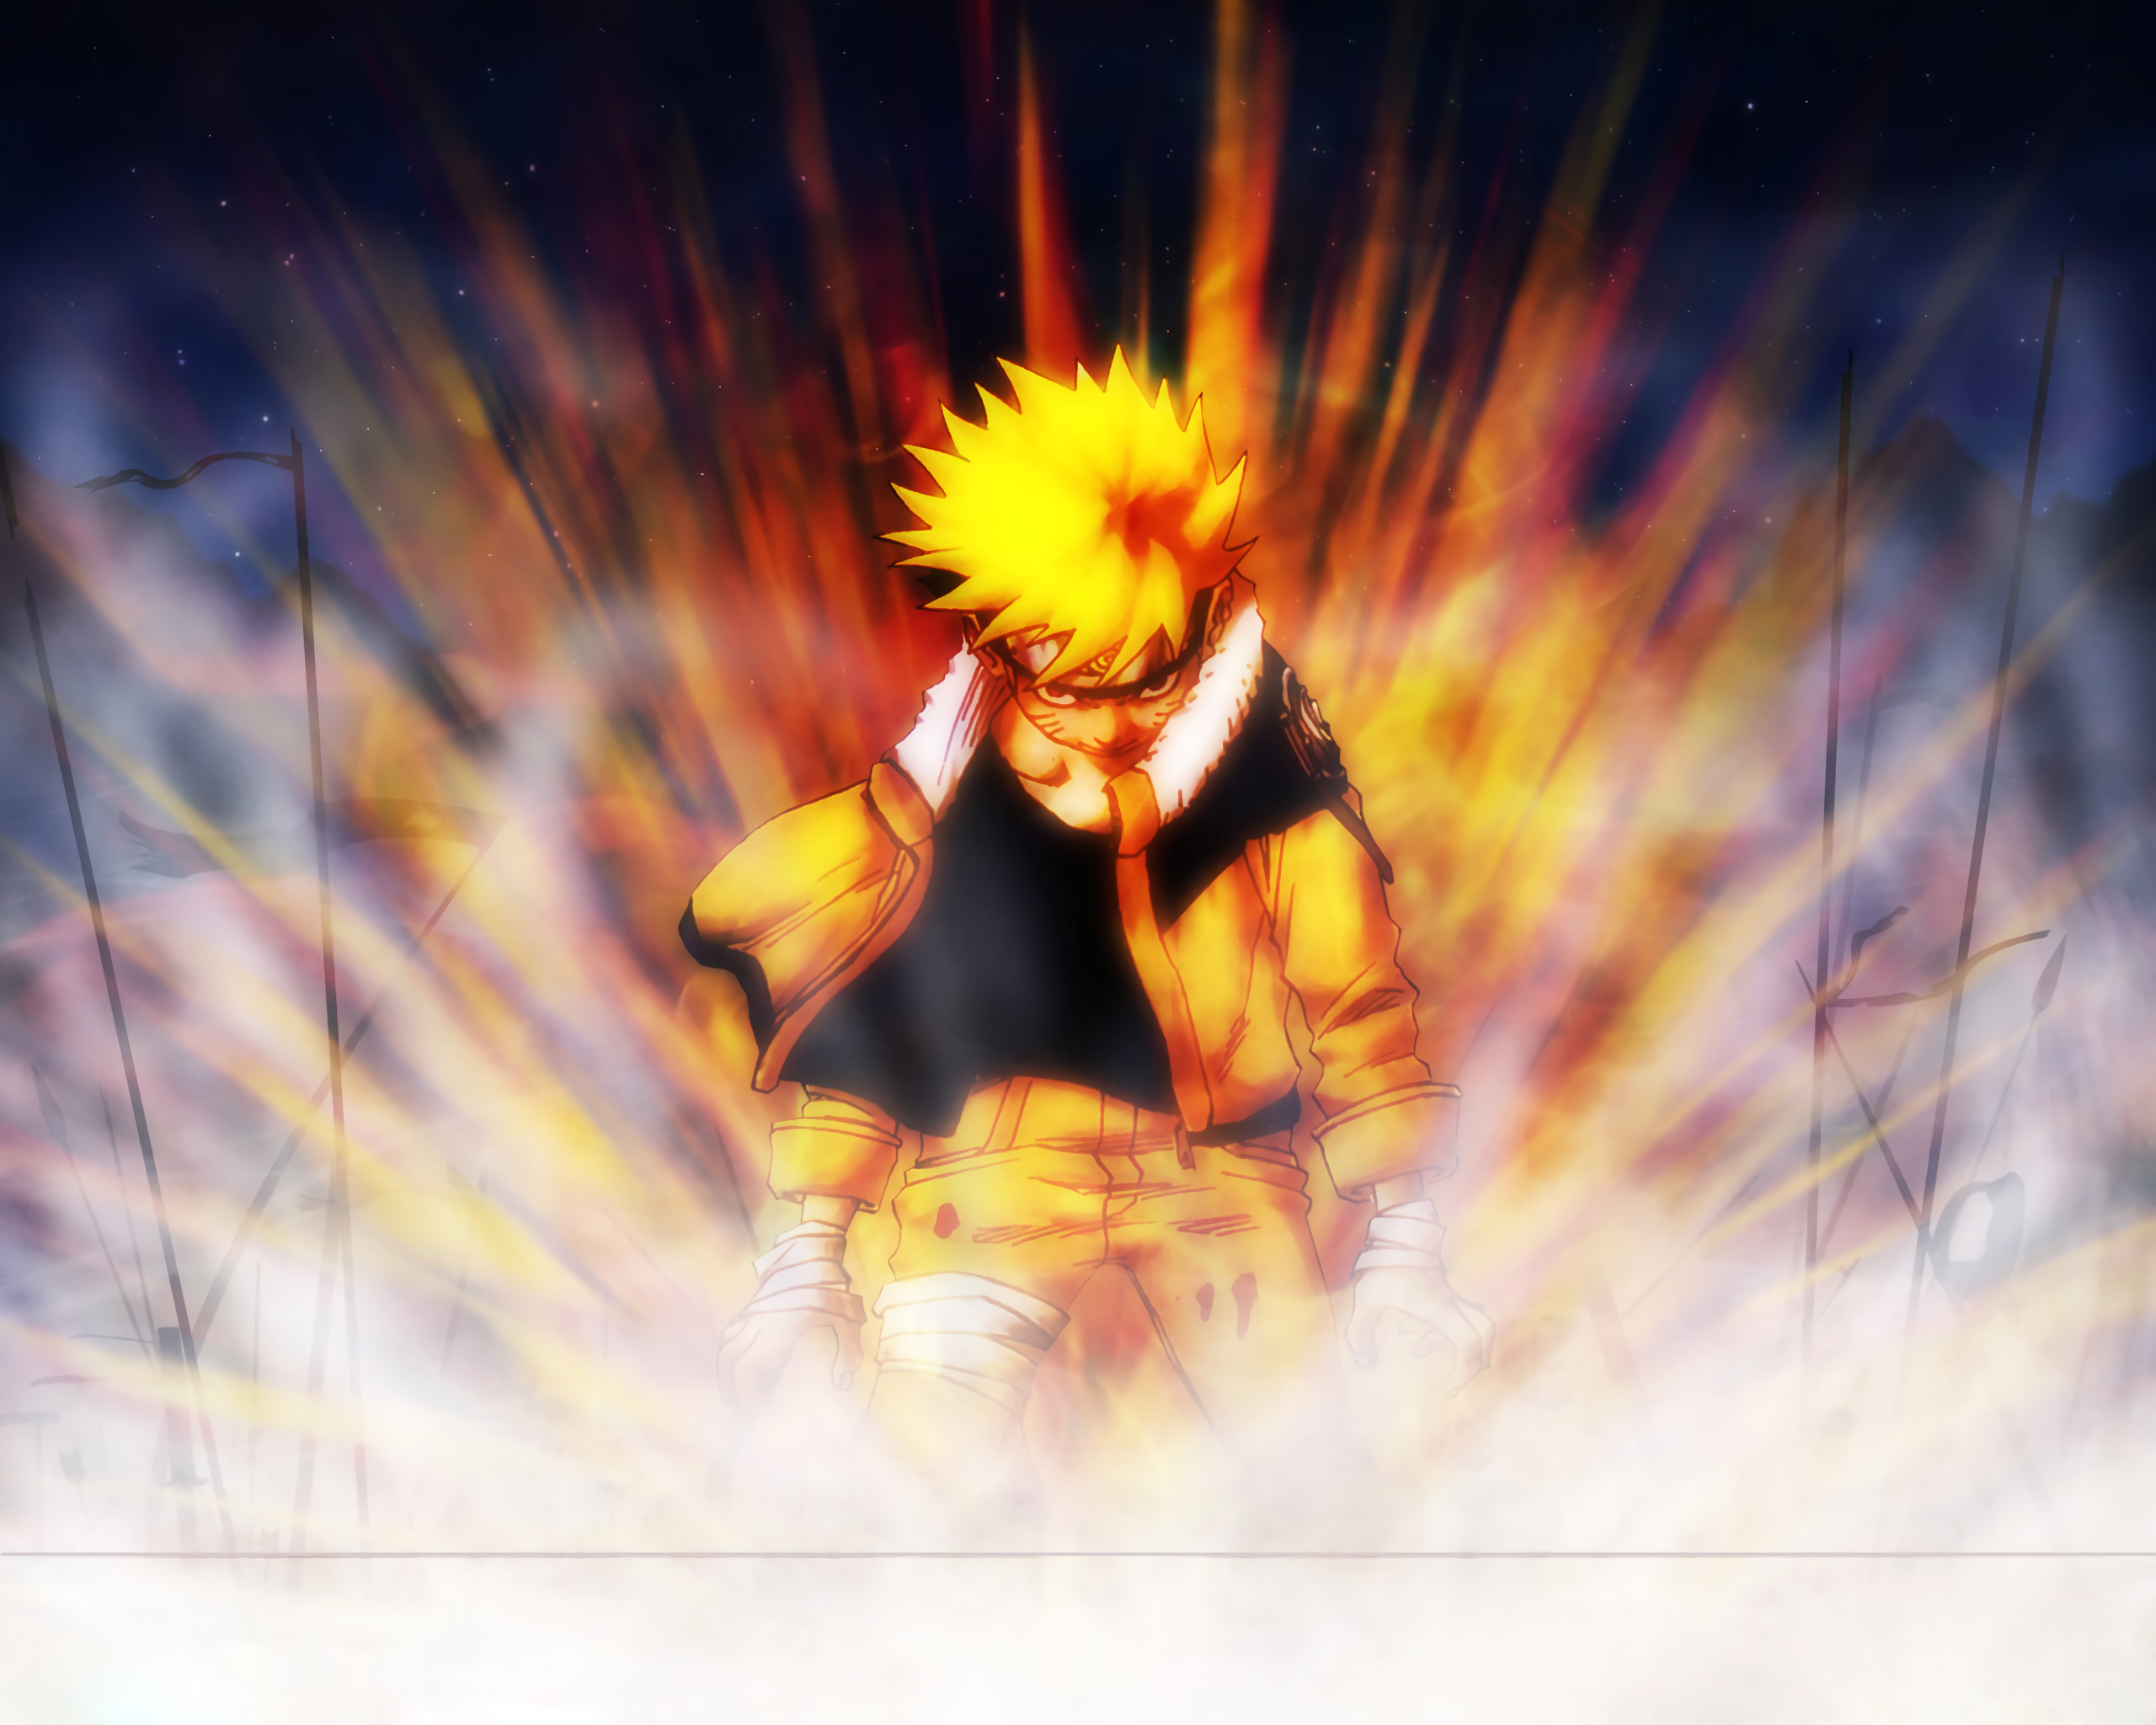 Unduh 930 Koleksi Wallpaper Hd Anime Naruto HD Gratid